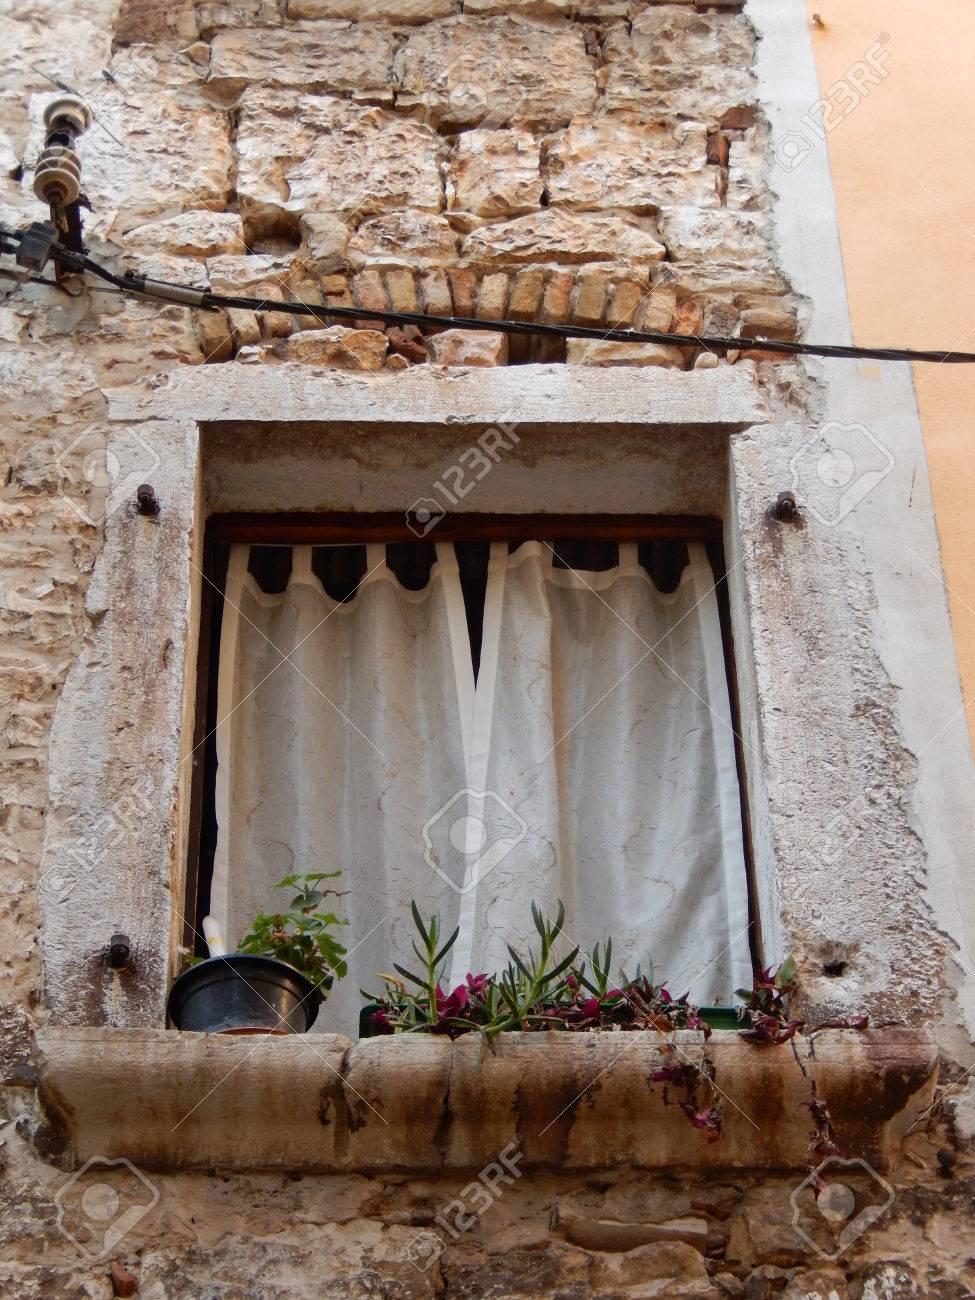 Old window with white curtains and flowers on a stone facade stock old window with white curtains and flowers on a stone facade in rovinj croatia mightylinksfo